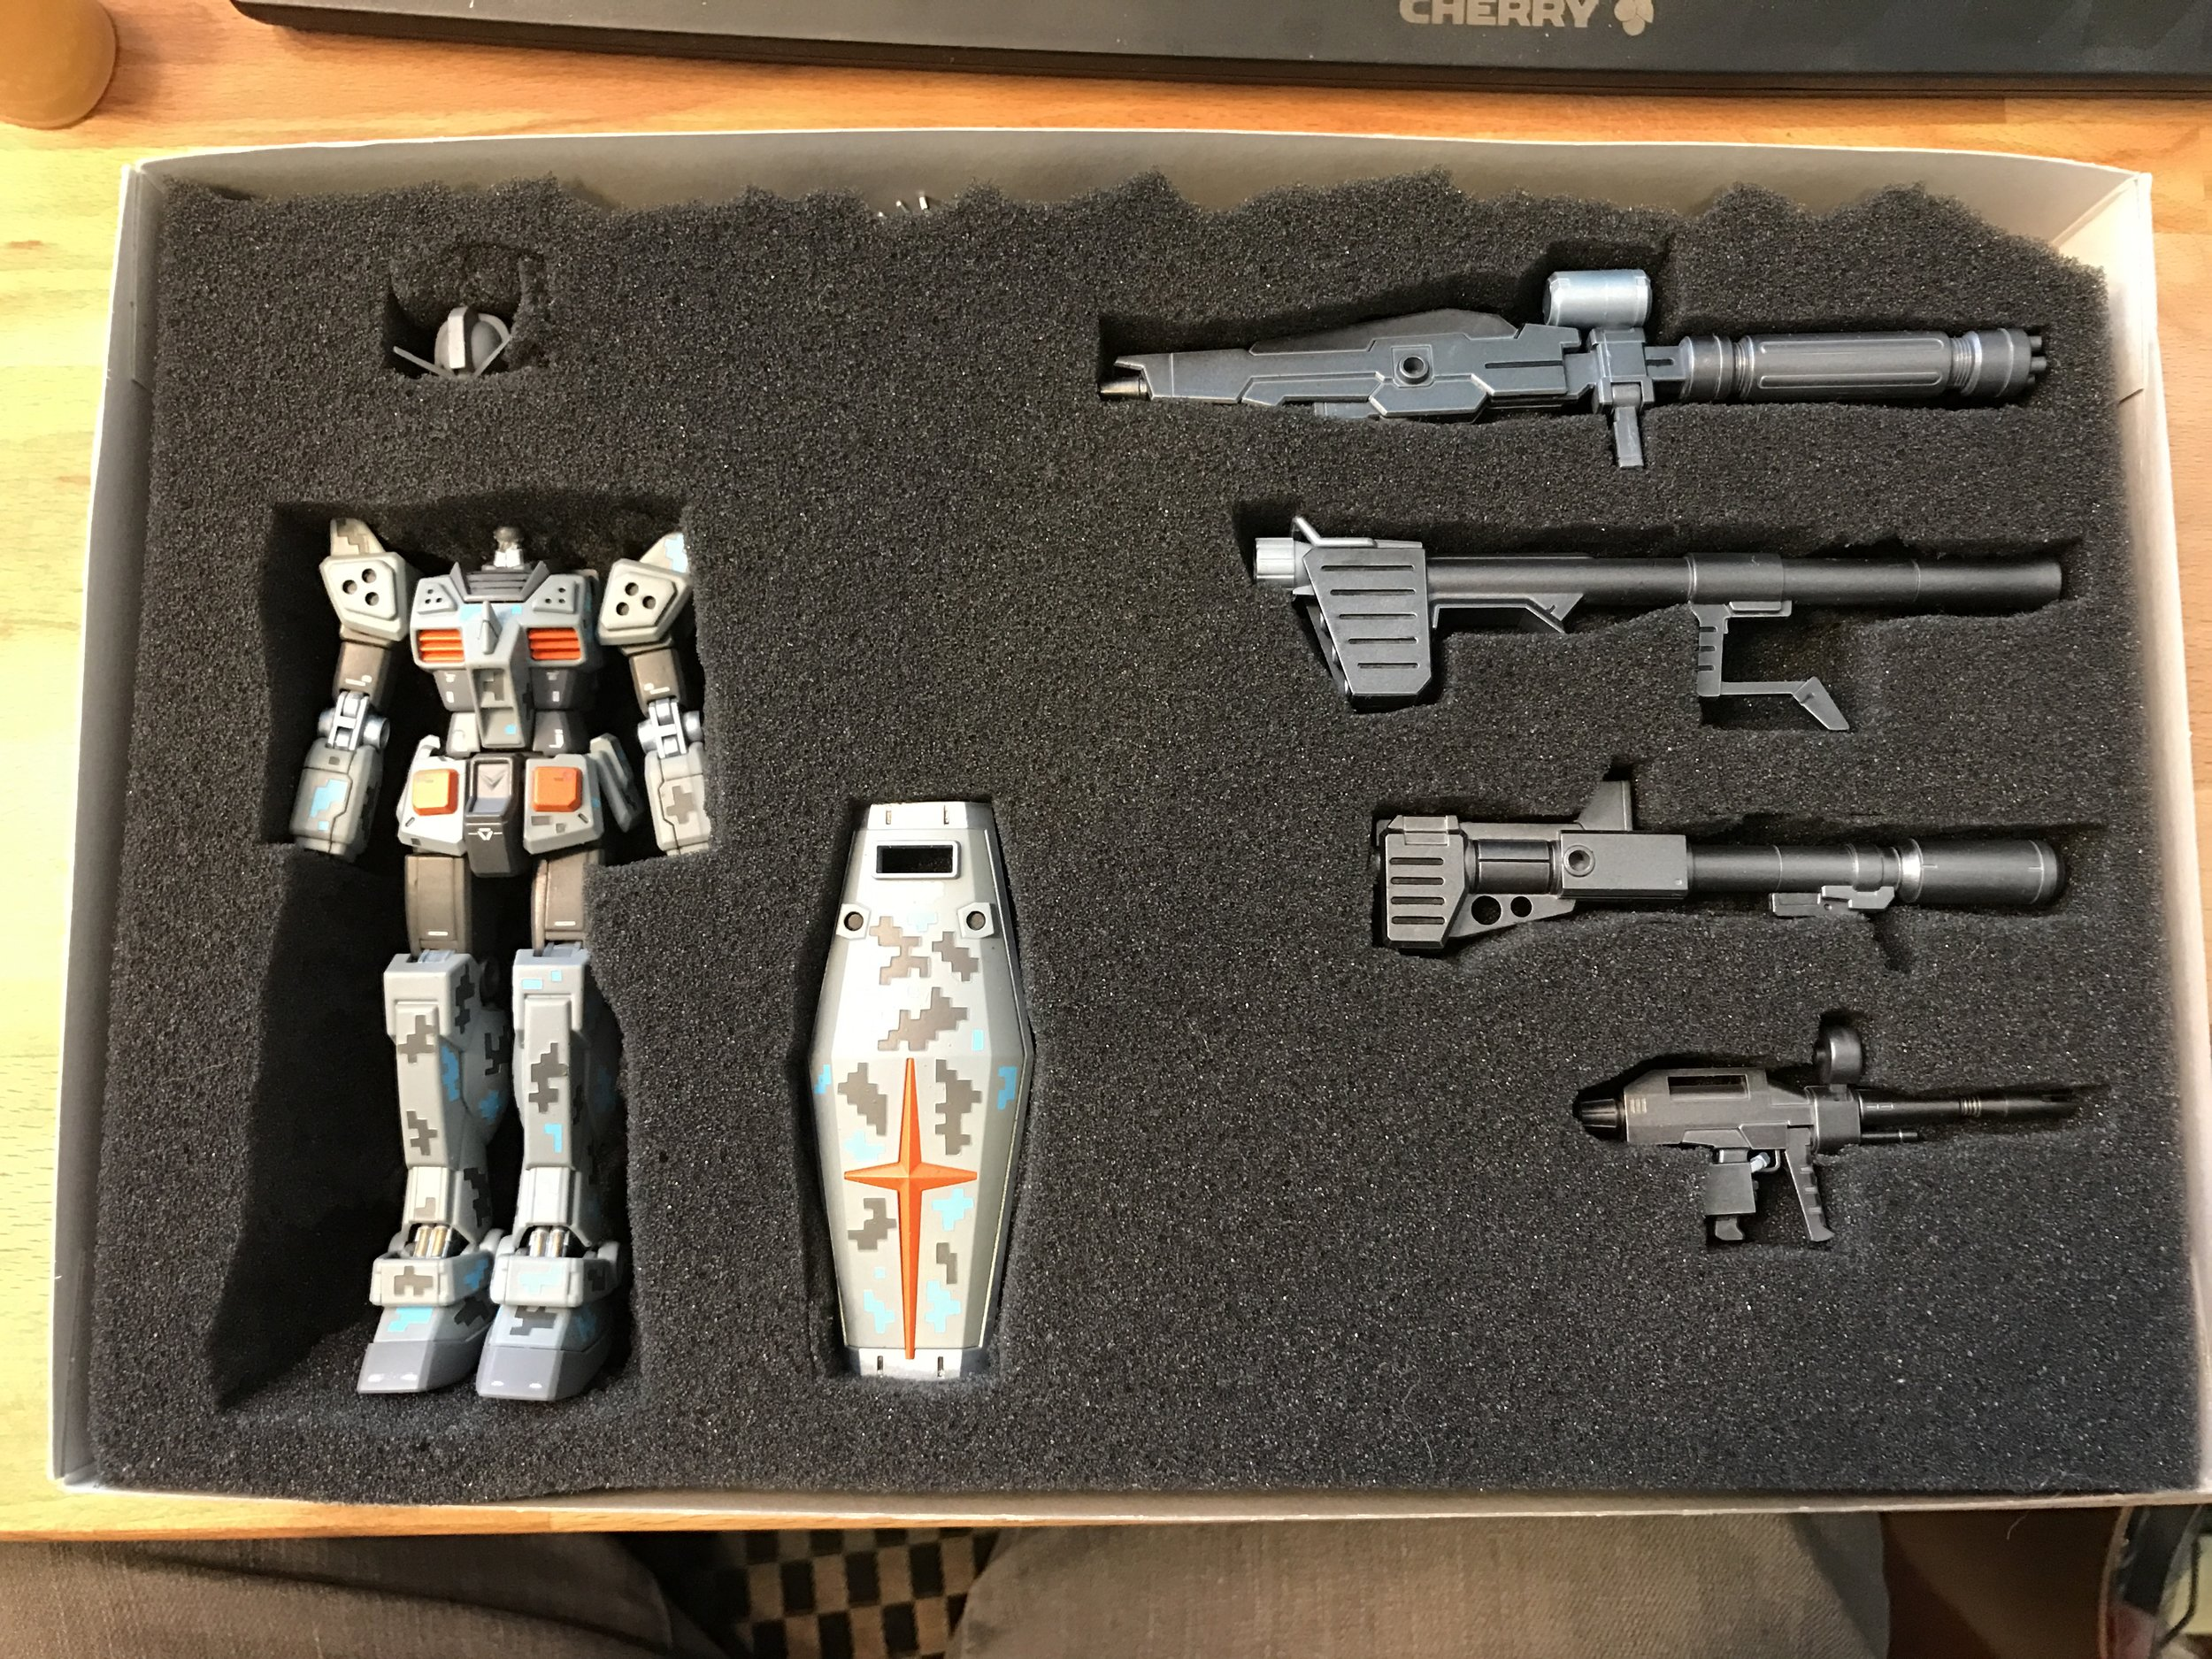 All finished and packed up for shipping! I bought some foam from Amazon and cut places for the body and parts, then put it back in the box the kit came in.